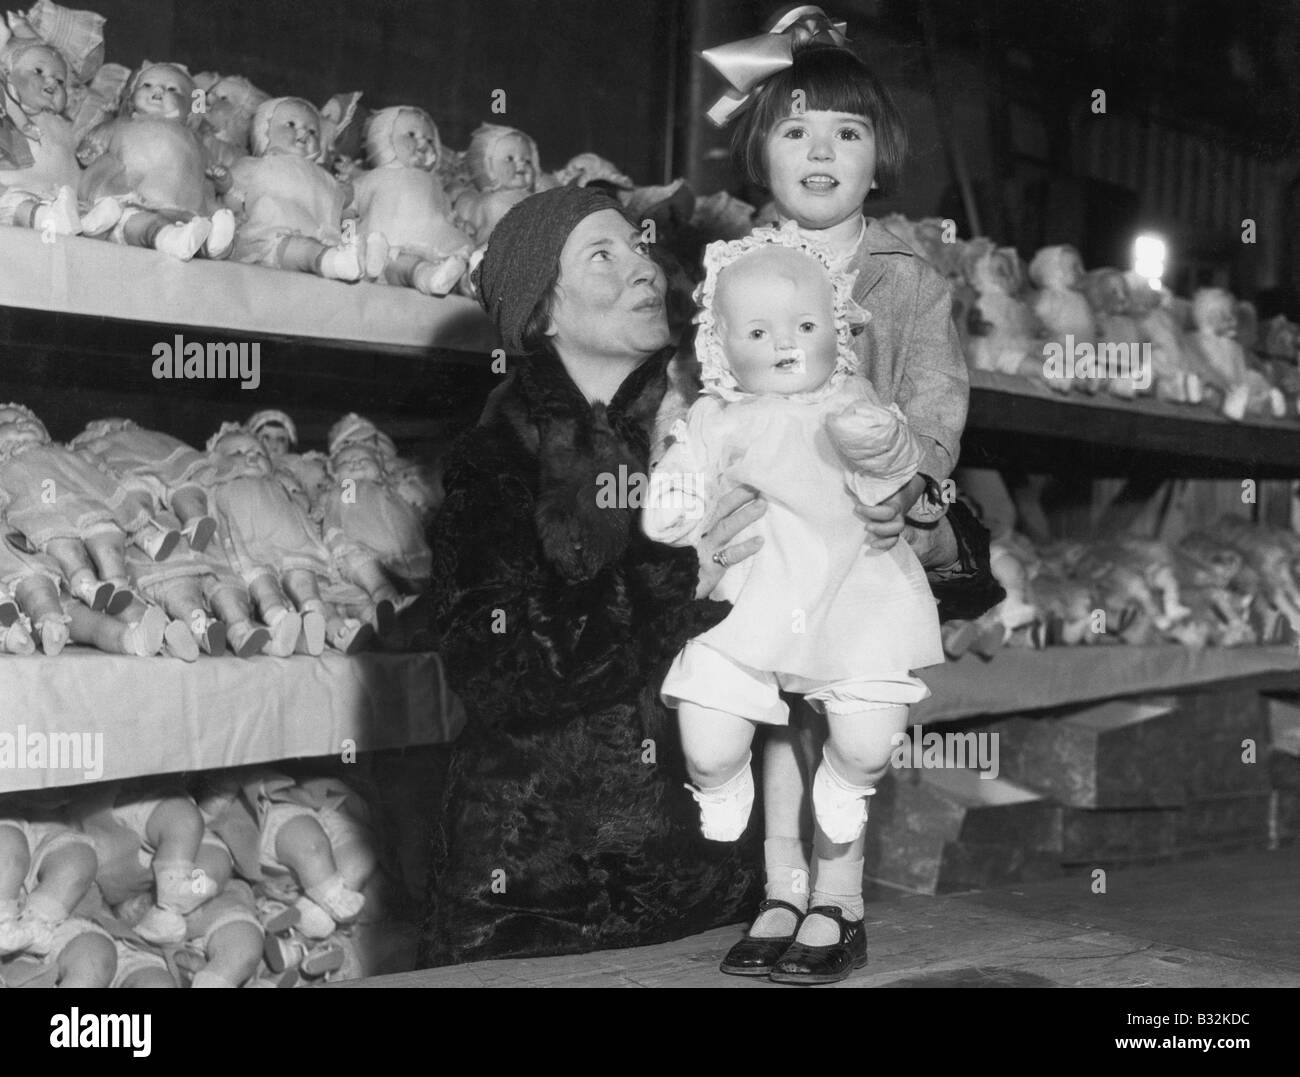 Mother and daughter with shelves of dolls - Stock Image